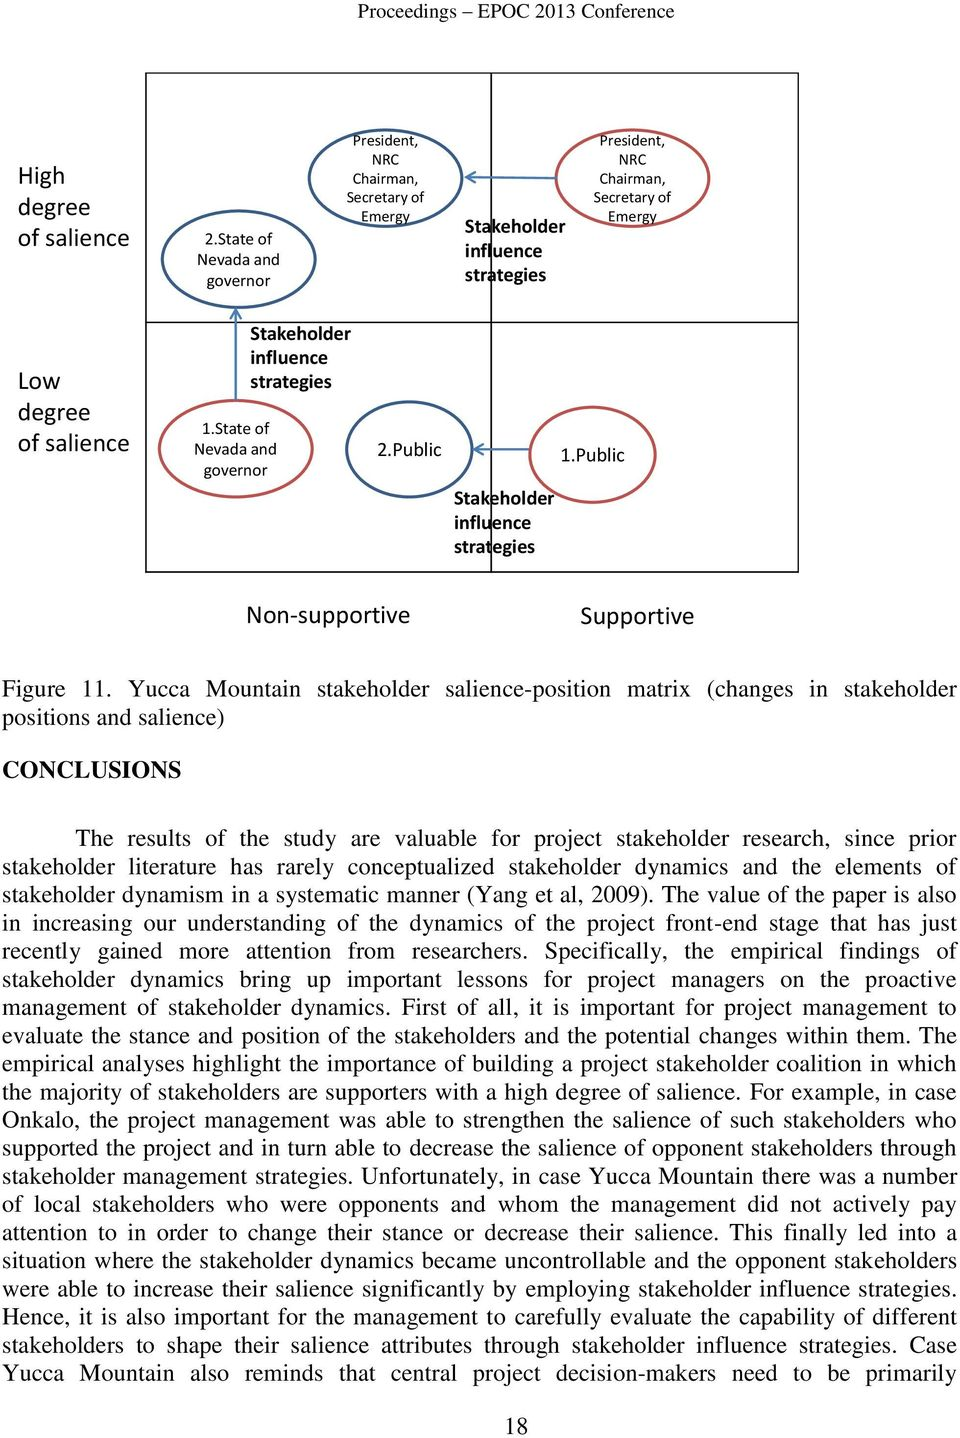 Yucca Mountain stakeholder salience-position matrix (changes in stakeholder positions and salience) CONCLUSIONS The results of the study are valuable for project stakeholder research, since prior